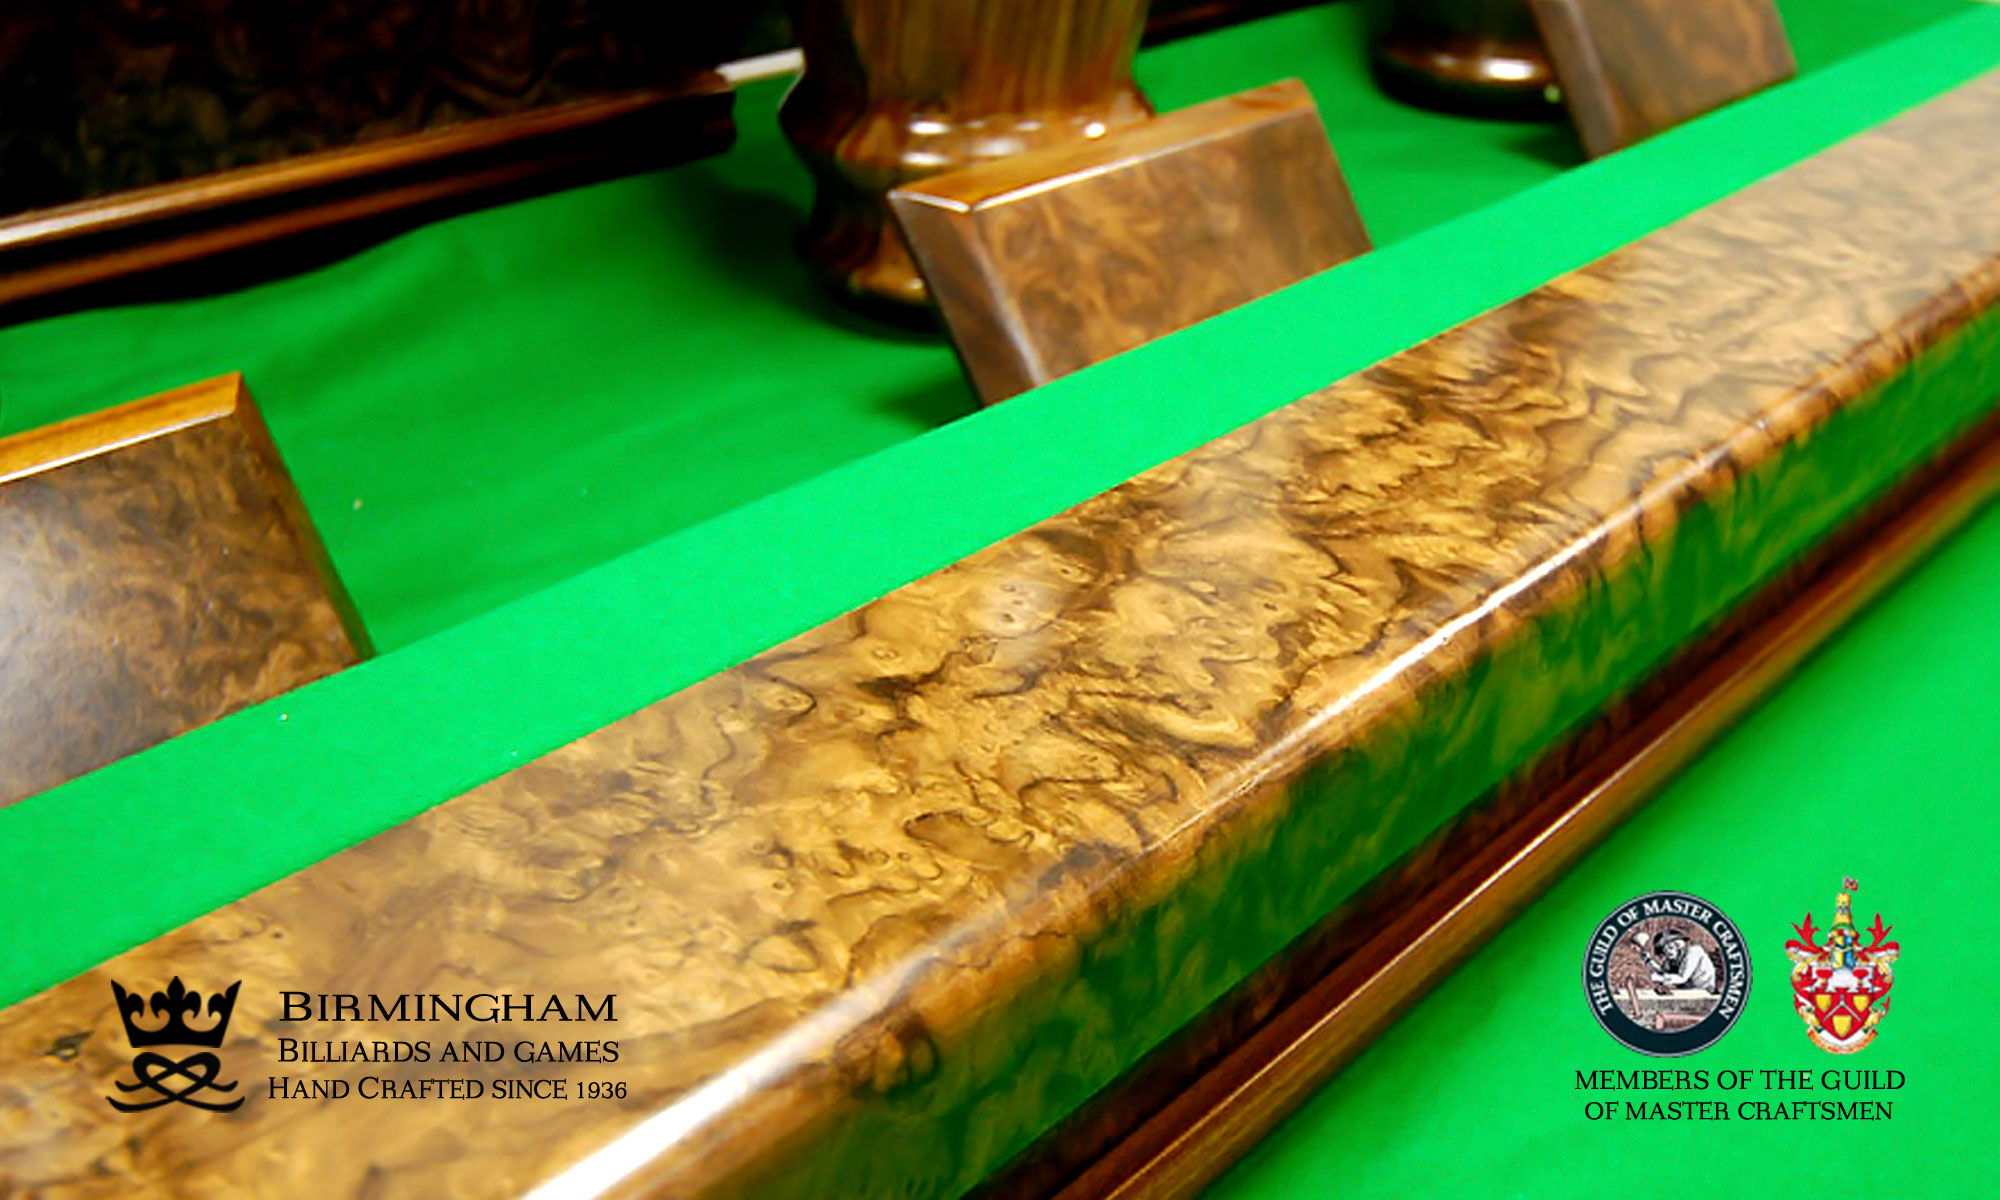 The Balmoral hand carved snooker table